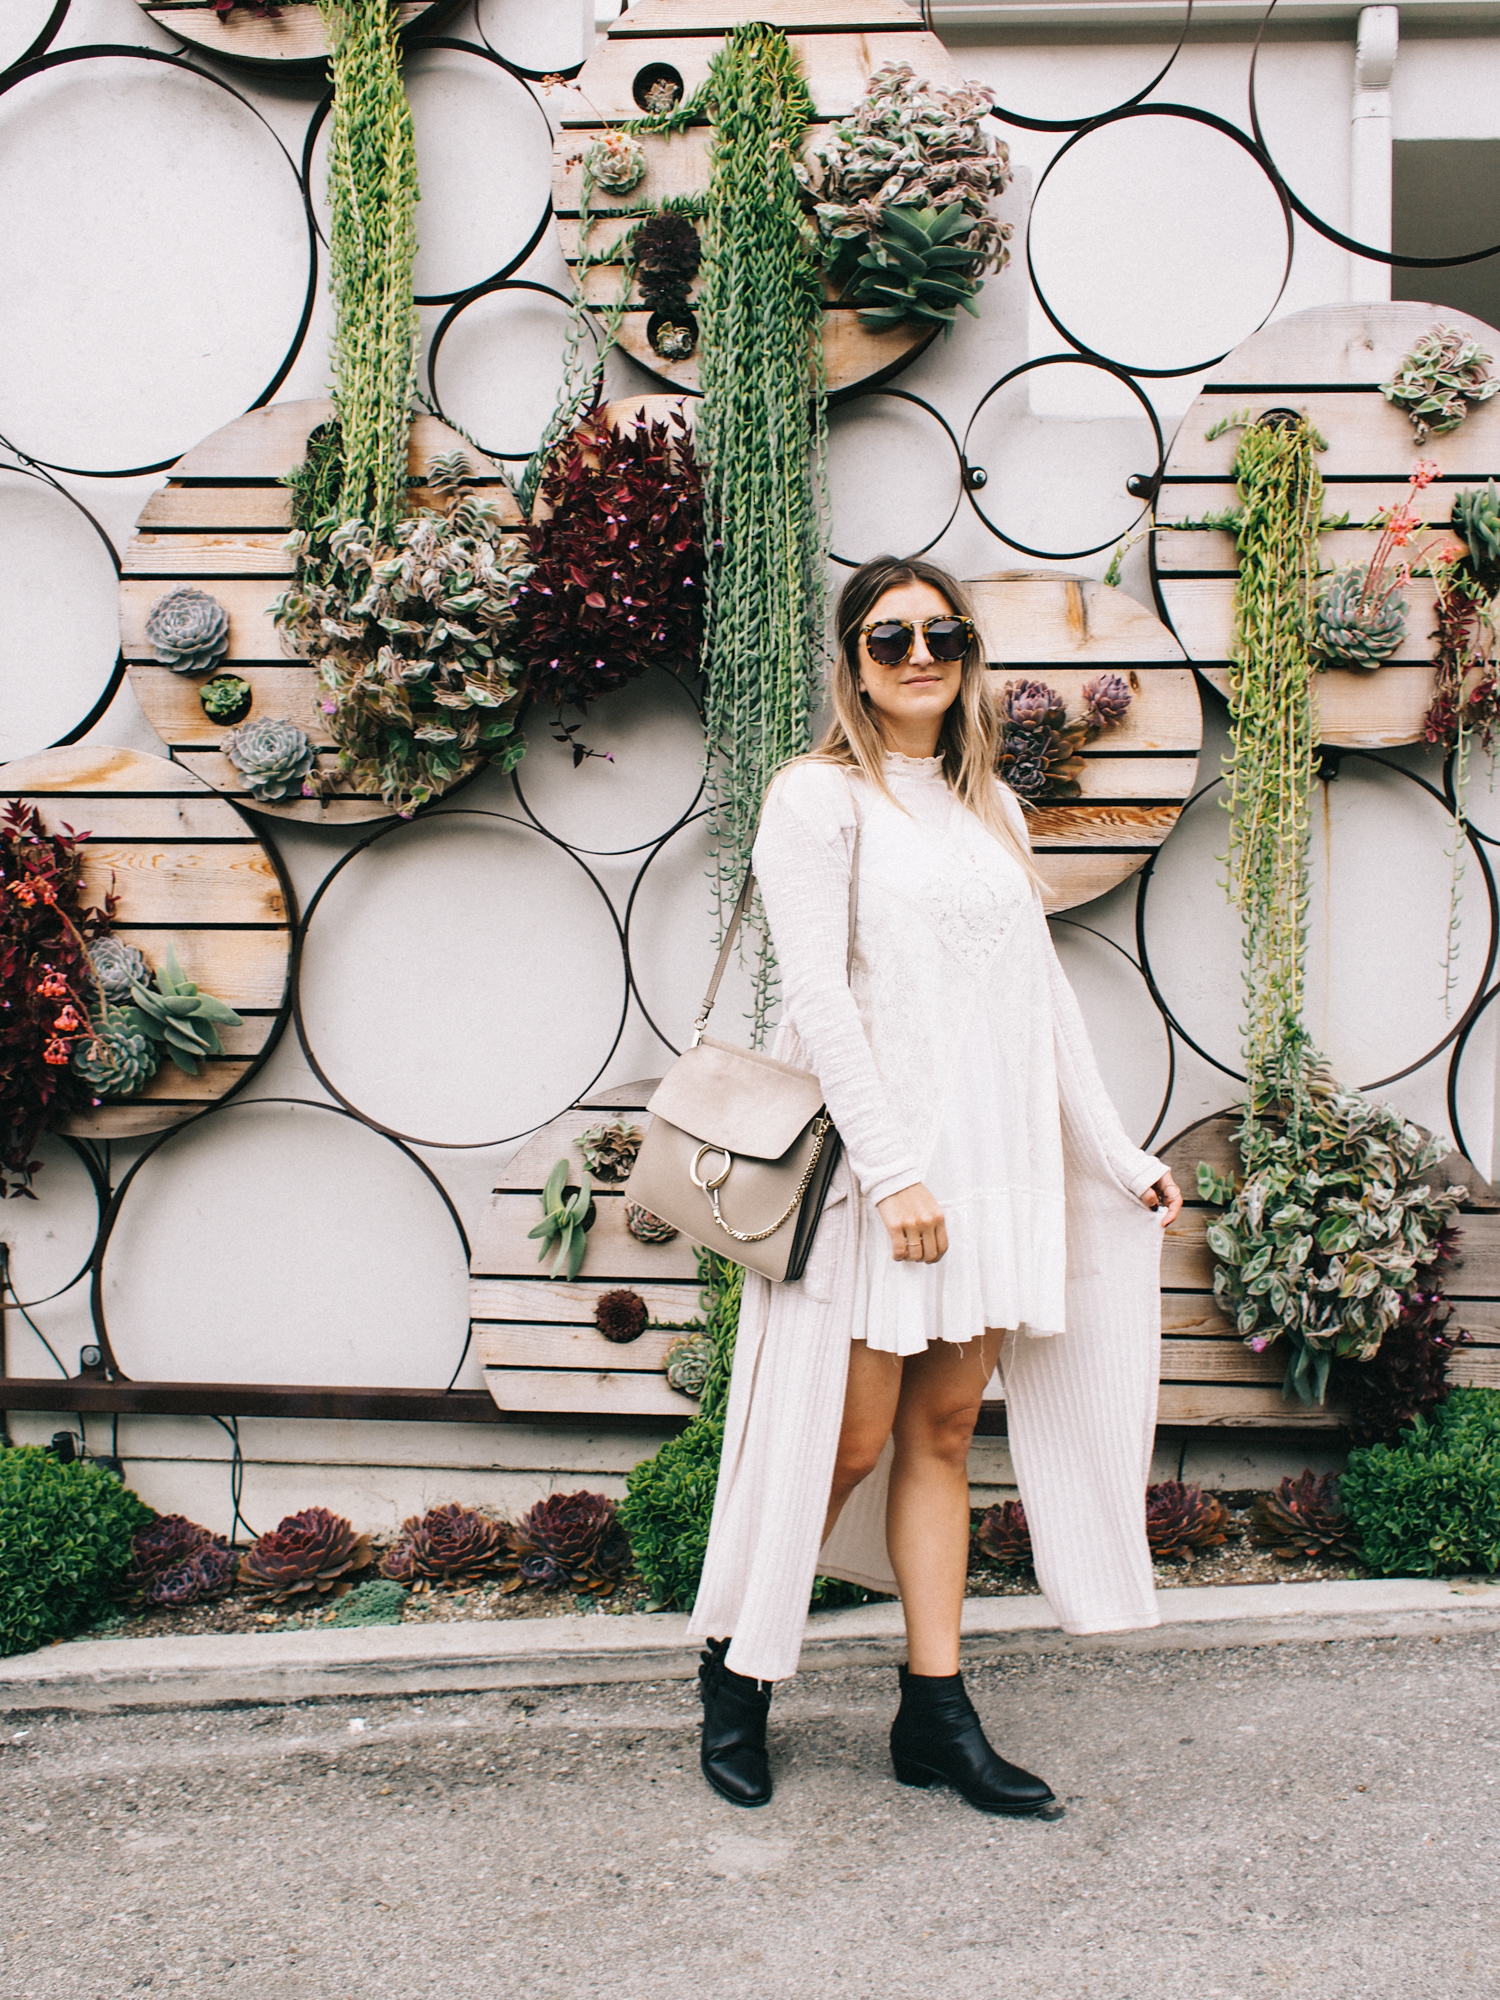 Free people dress + Loeffler Randall booties | A Fabulous Fete